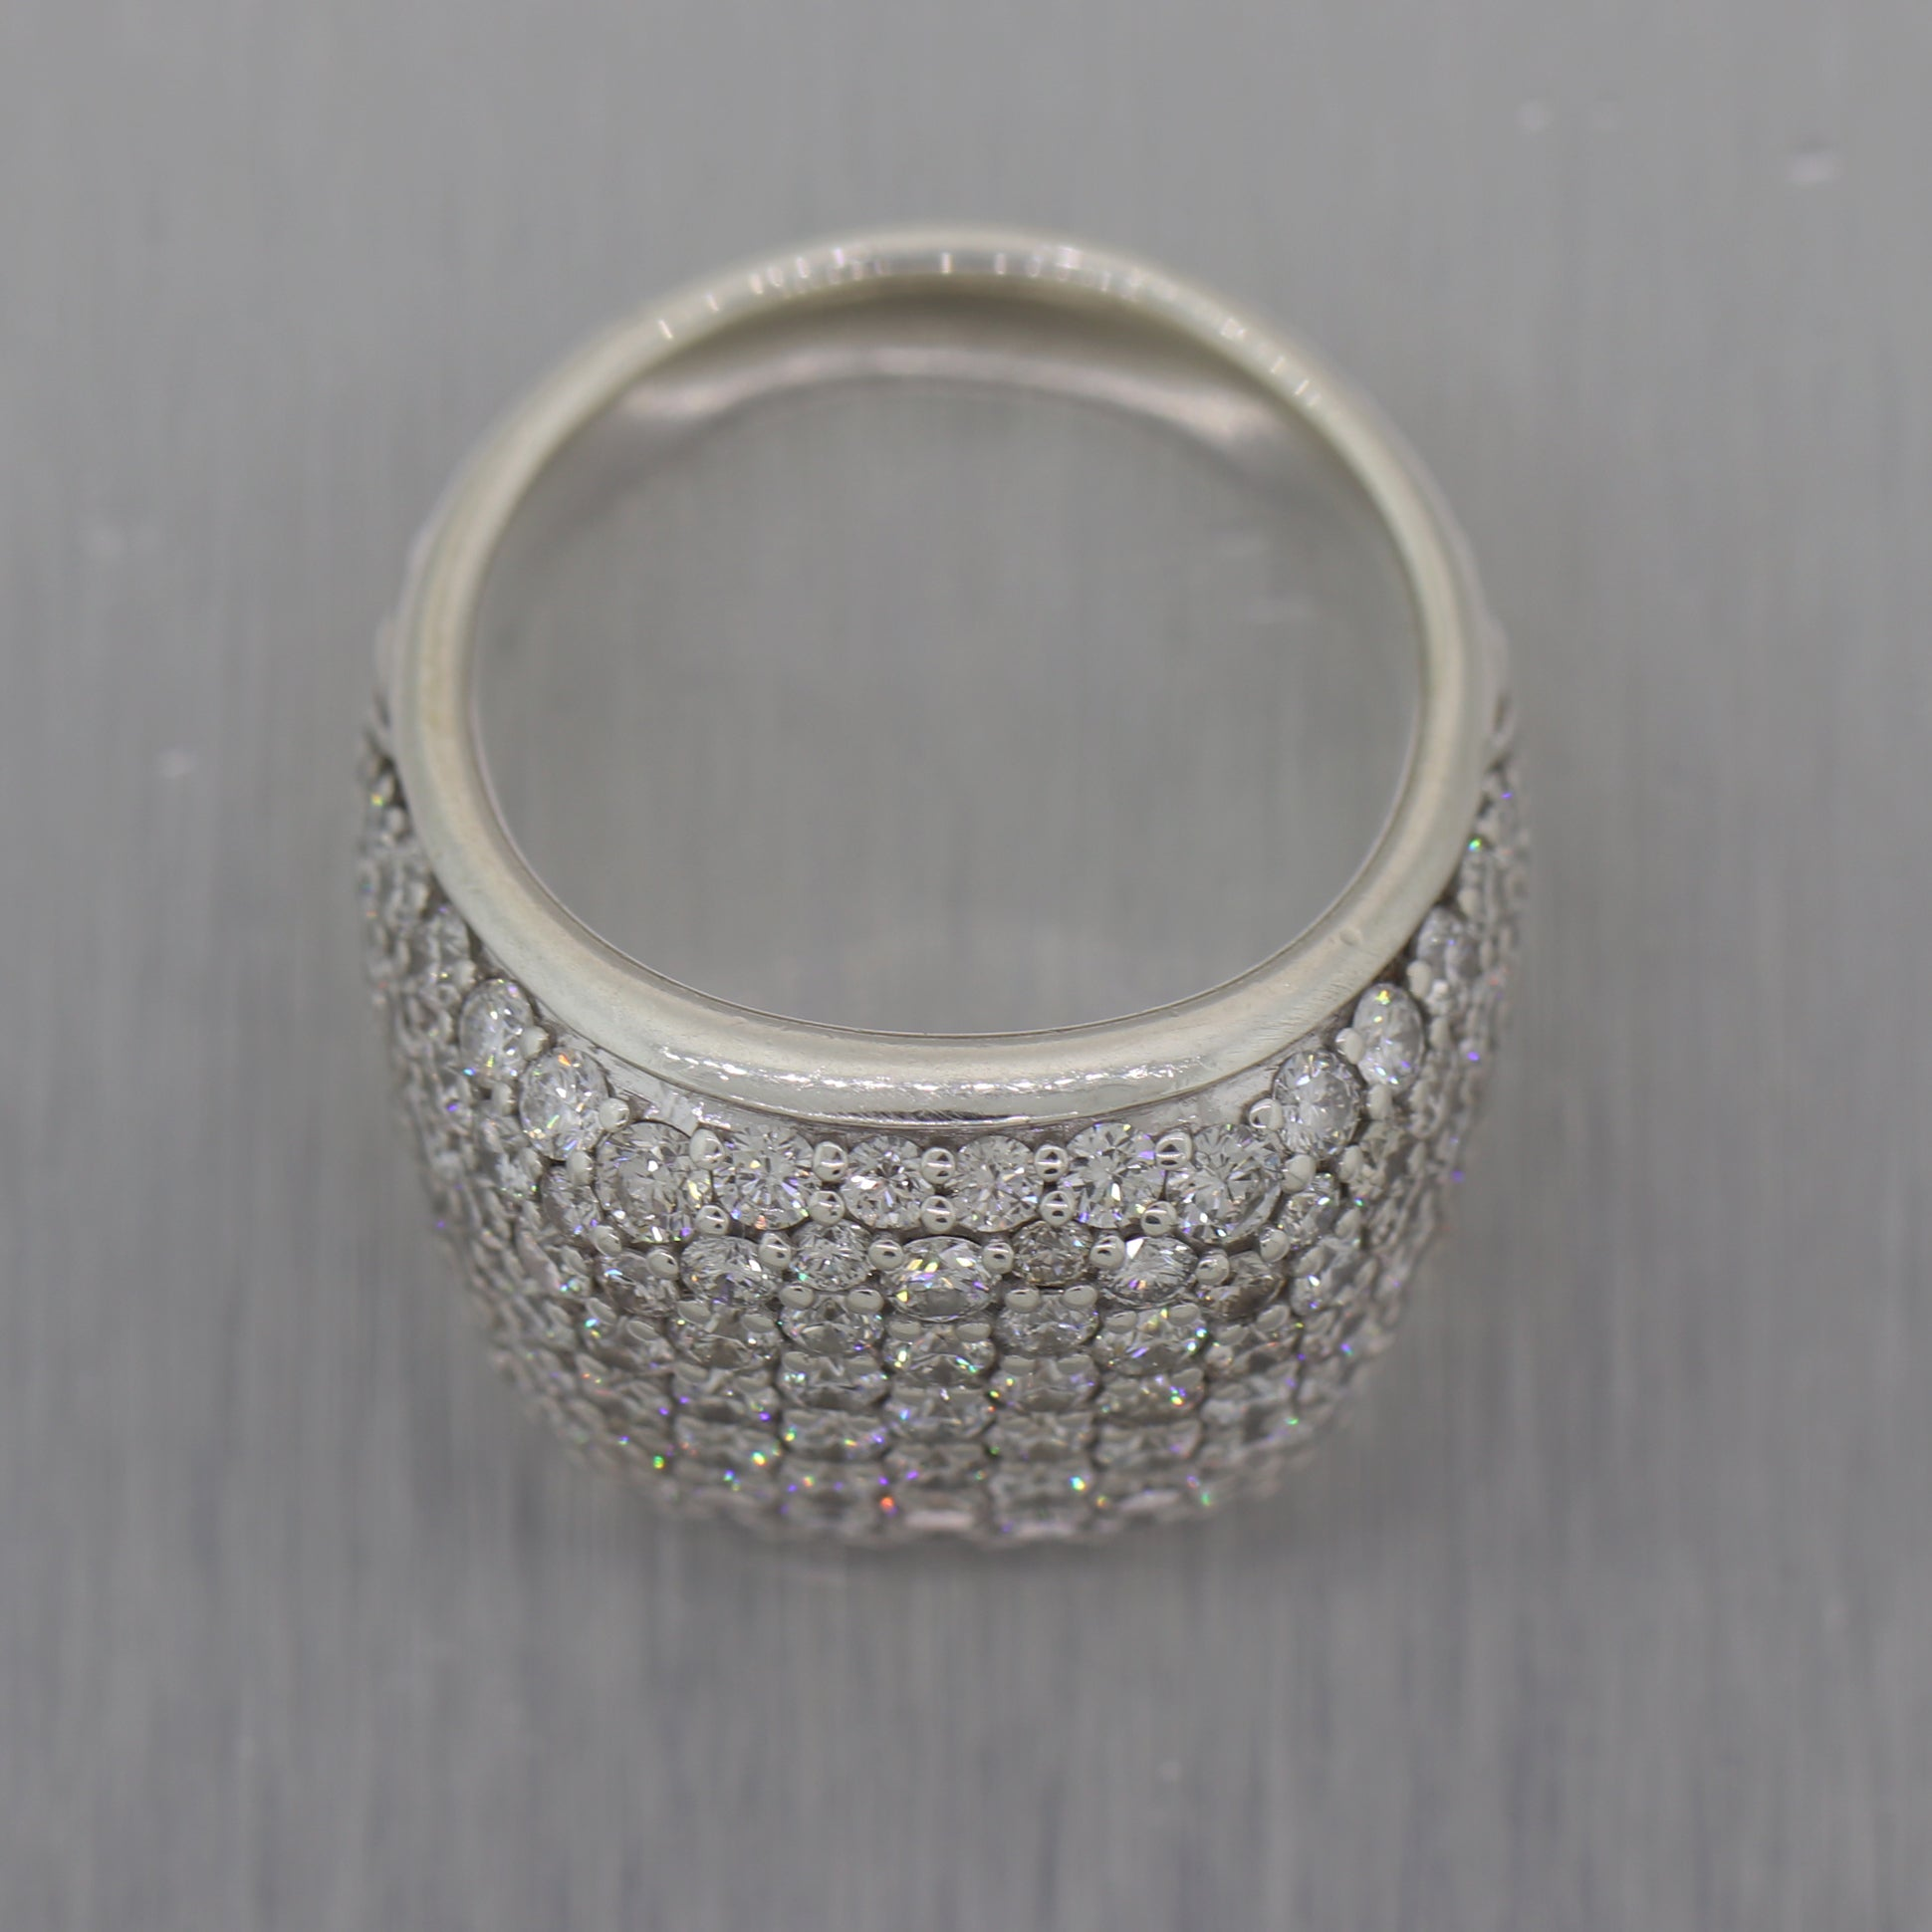 David Yurman Sterling Silver 5ctw Diamond Ring